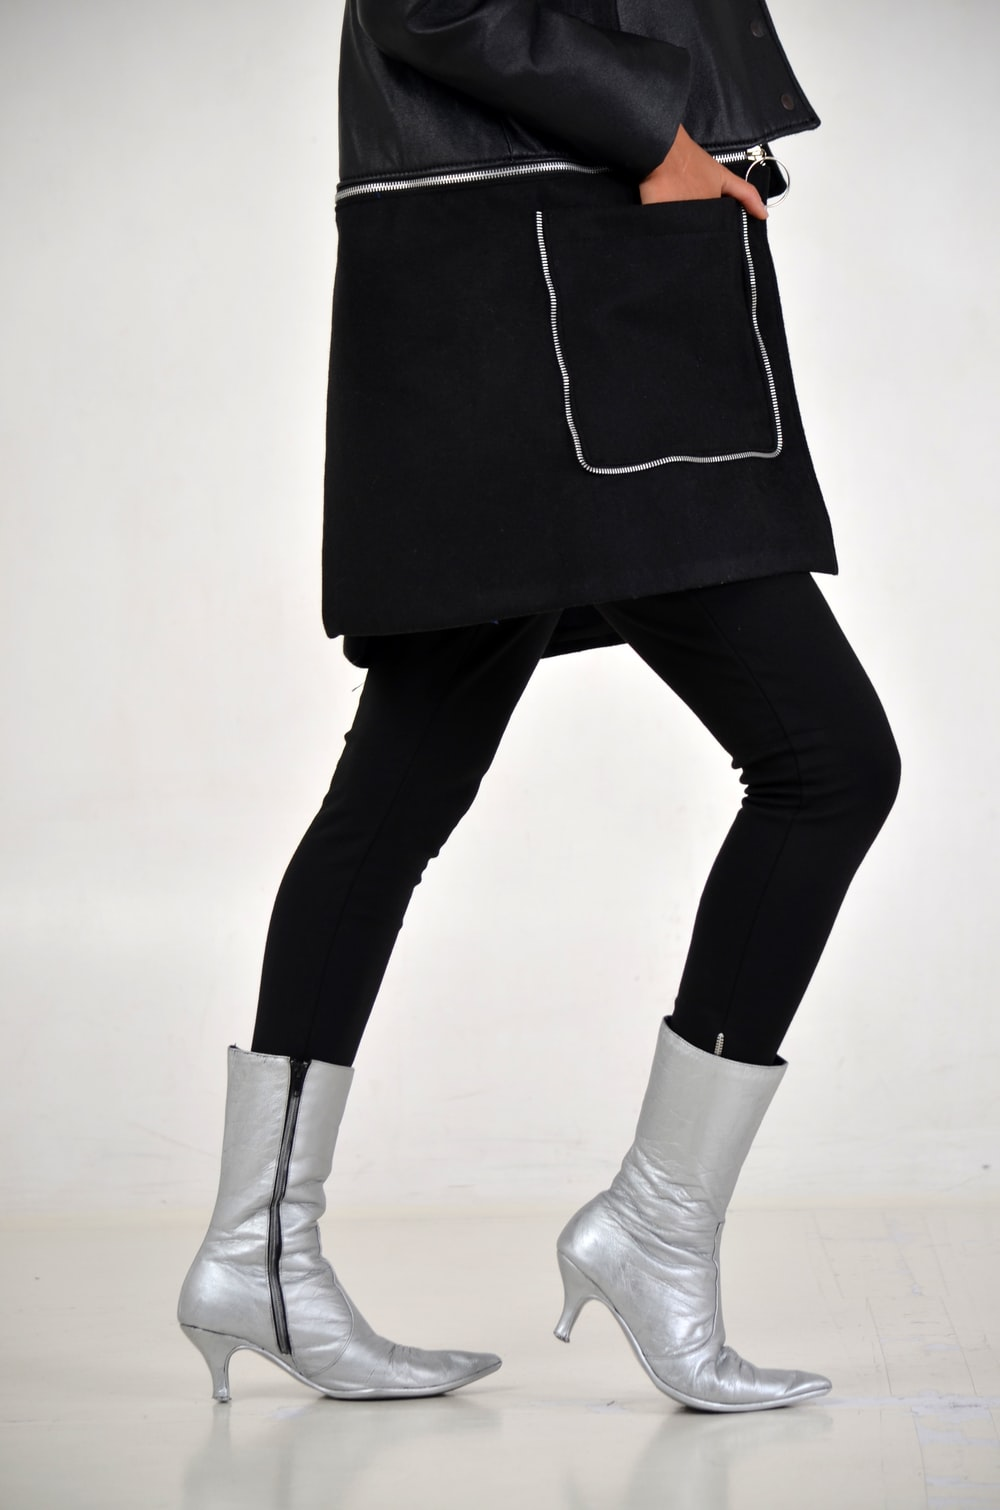 woman in black bottoms and silver side-zip boots